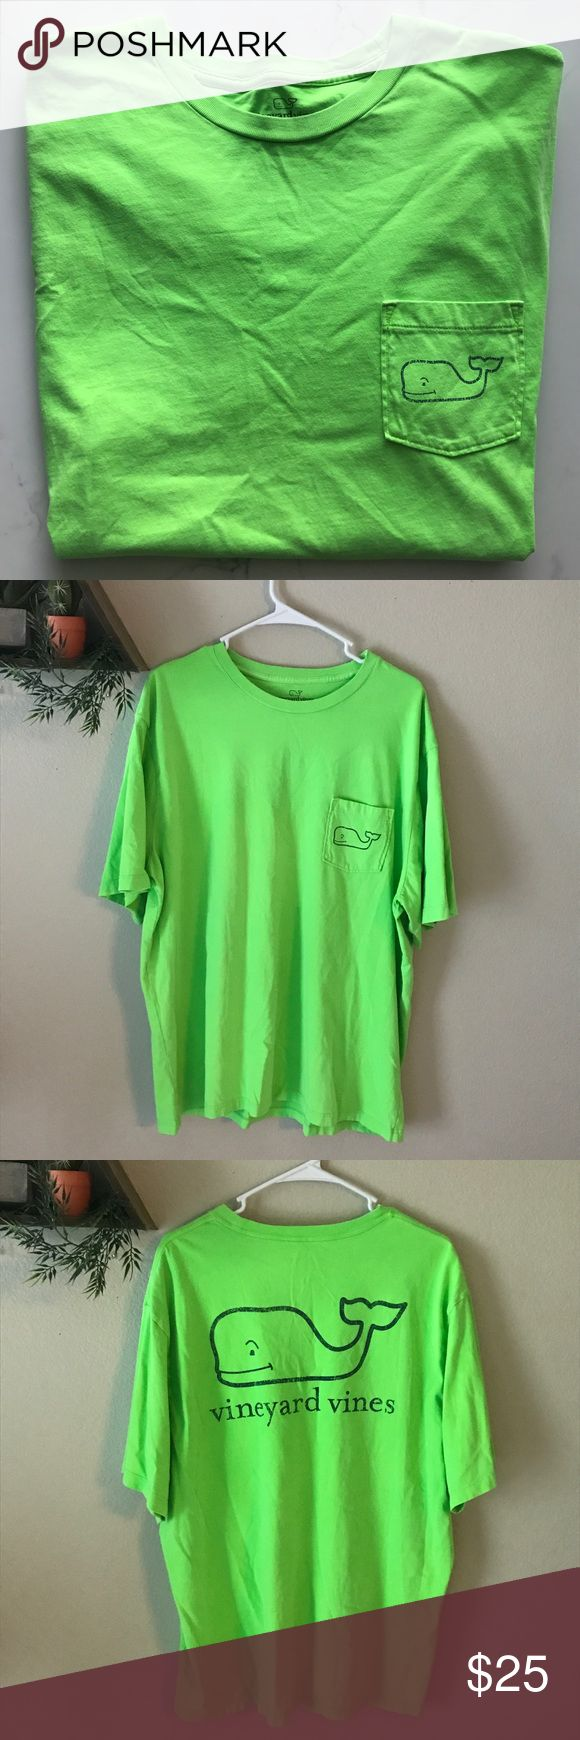 Vineyard Vines T-Shirt Vineyard Vines greens shirt men's Large. Vineyard Vines Shirts Tees - Short Sleeve